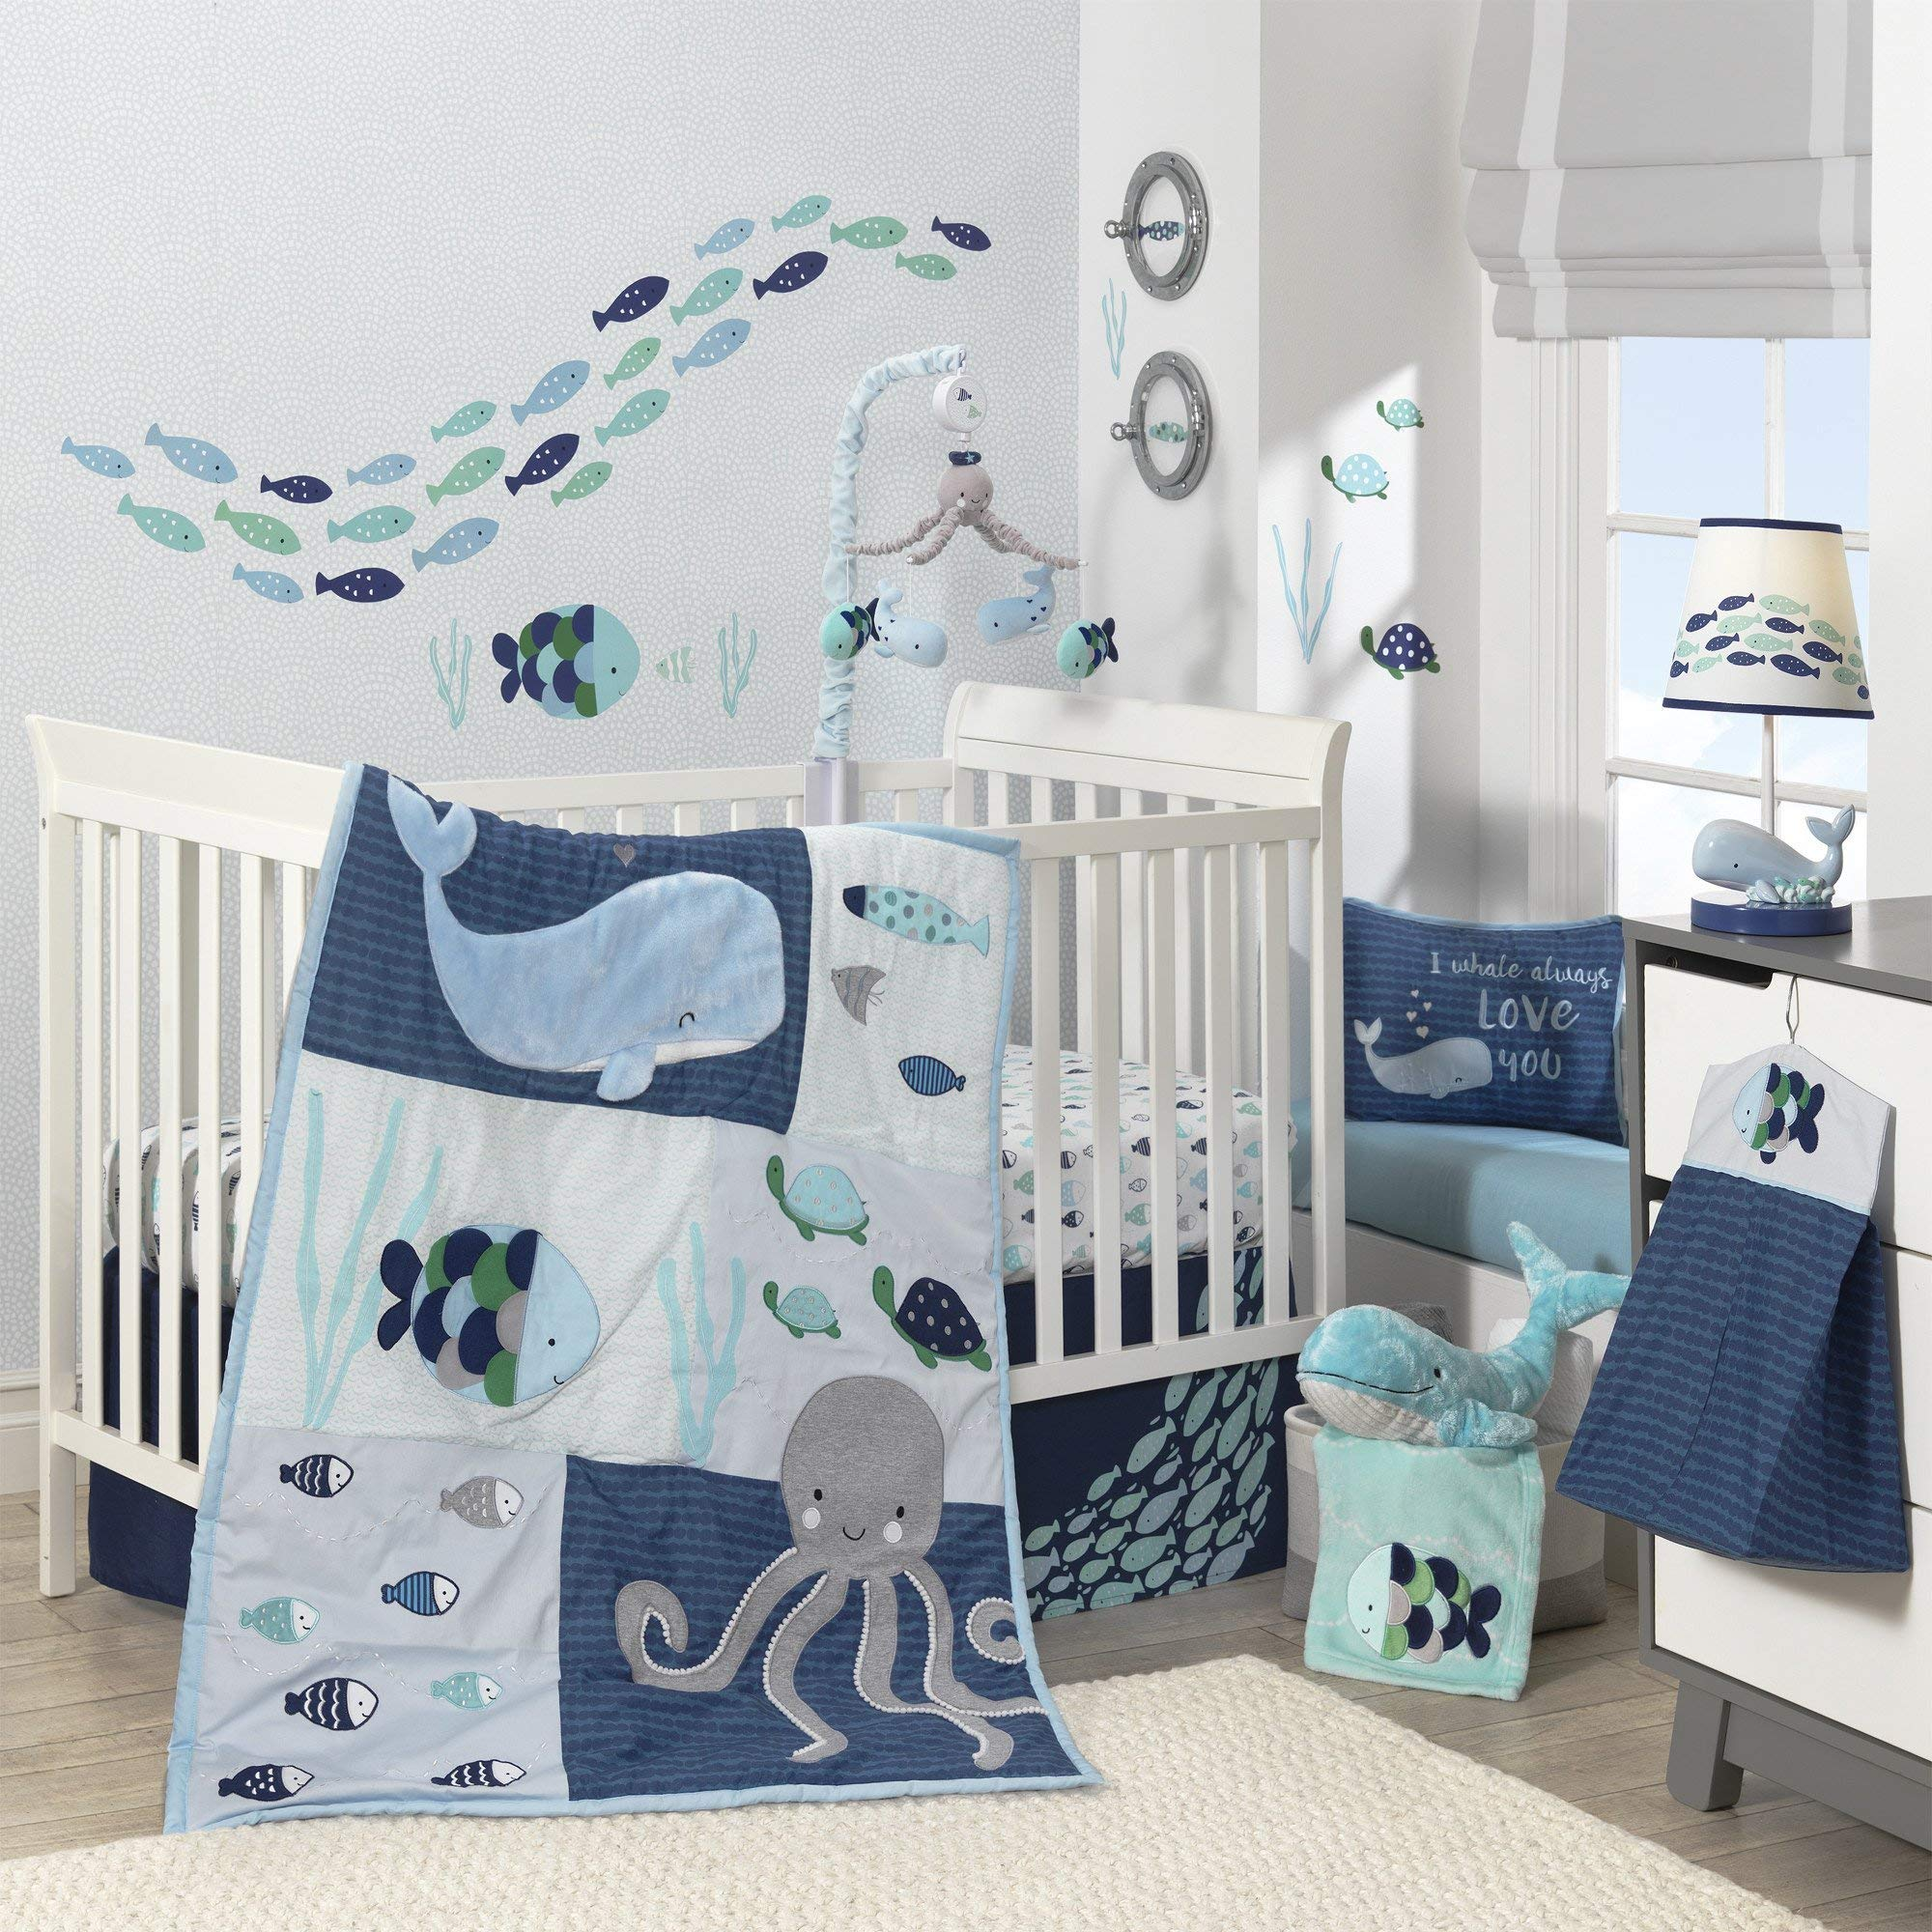 Lambs & Ivy Oceania 6-Piece Baby Crib Bedding Set - Blue Ocean, Nautical, Aquatic, Whale, Octopus Theme by Lambs & Ivy